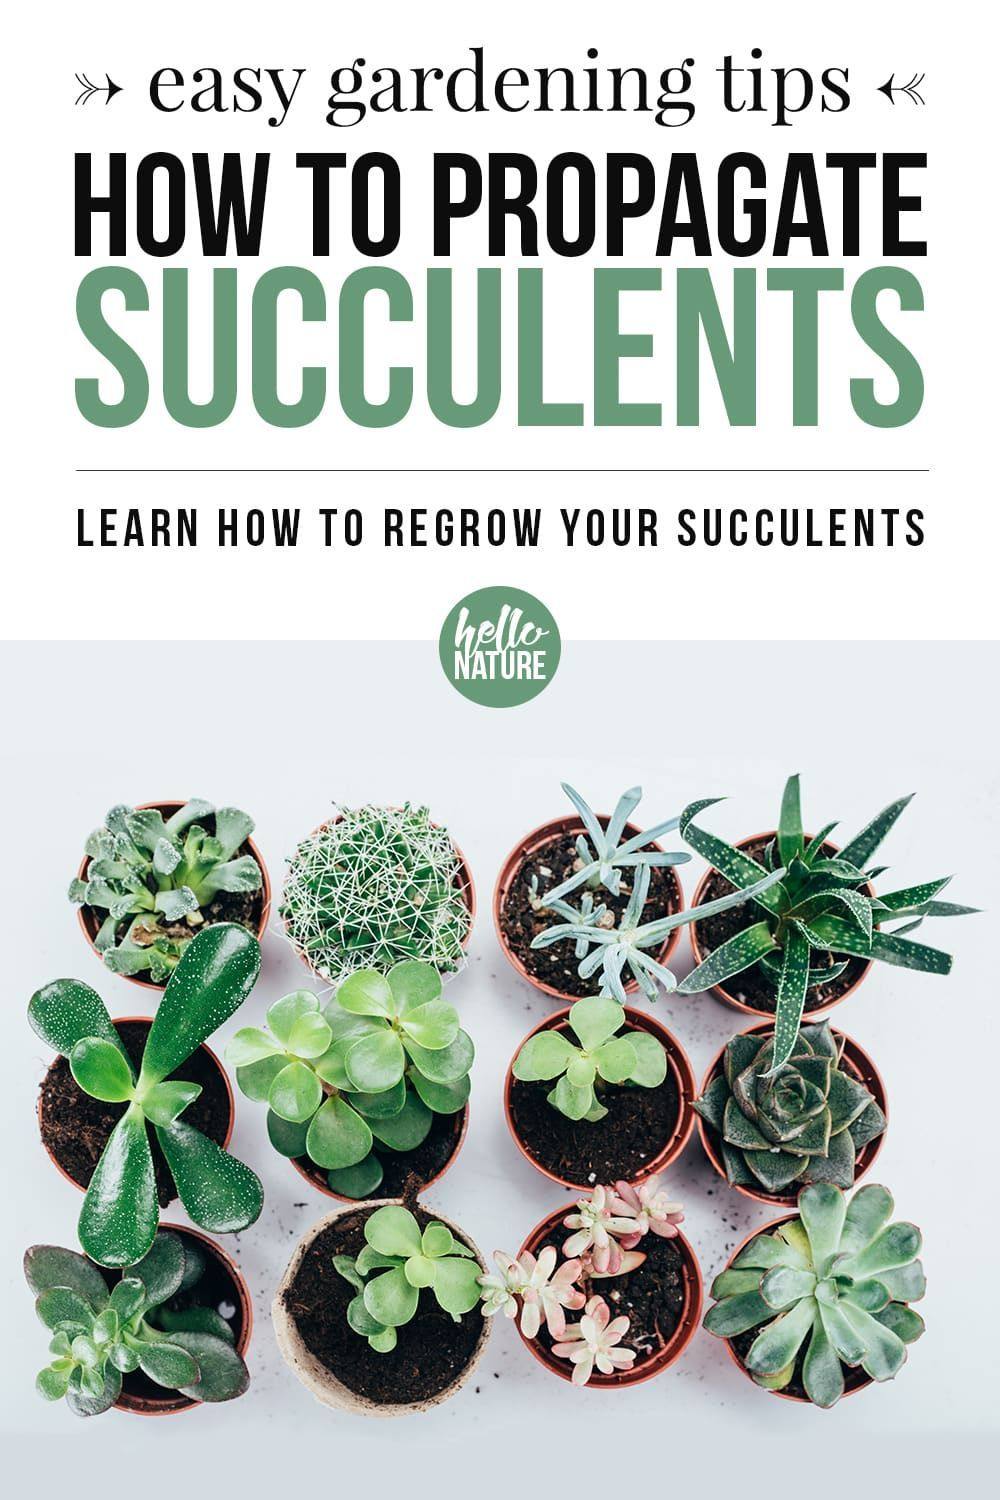 How To Propagate Succulents Regrowing Succulents From Leaves